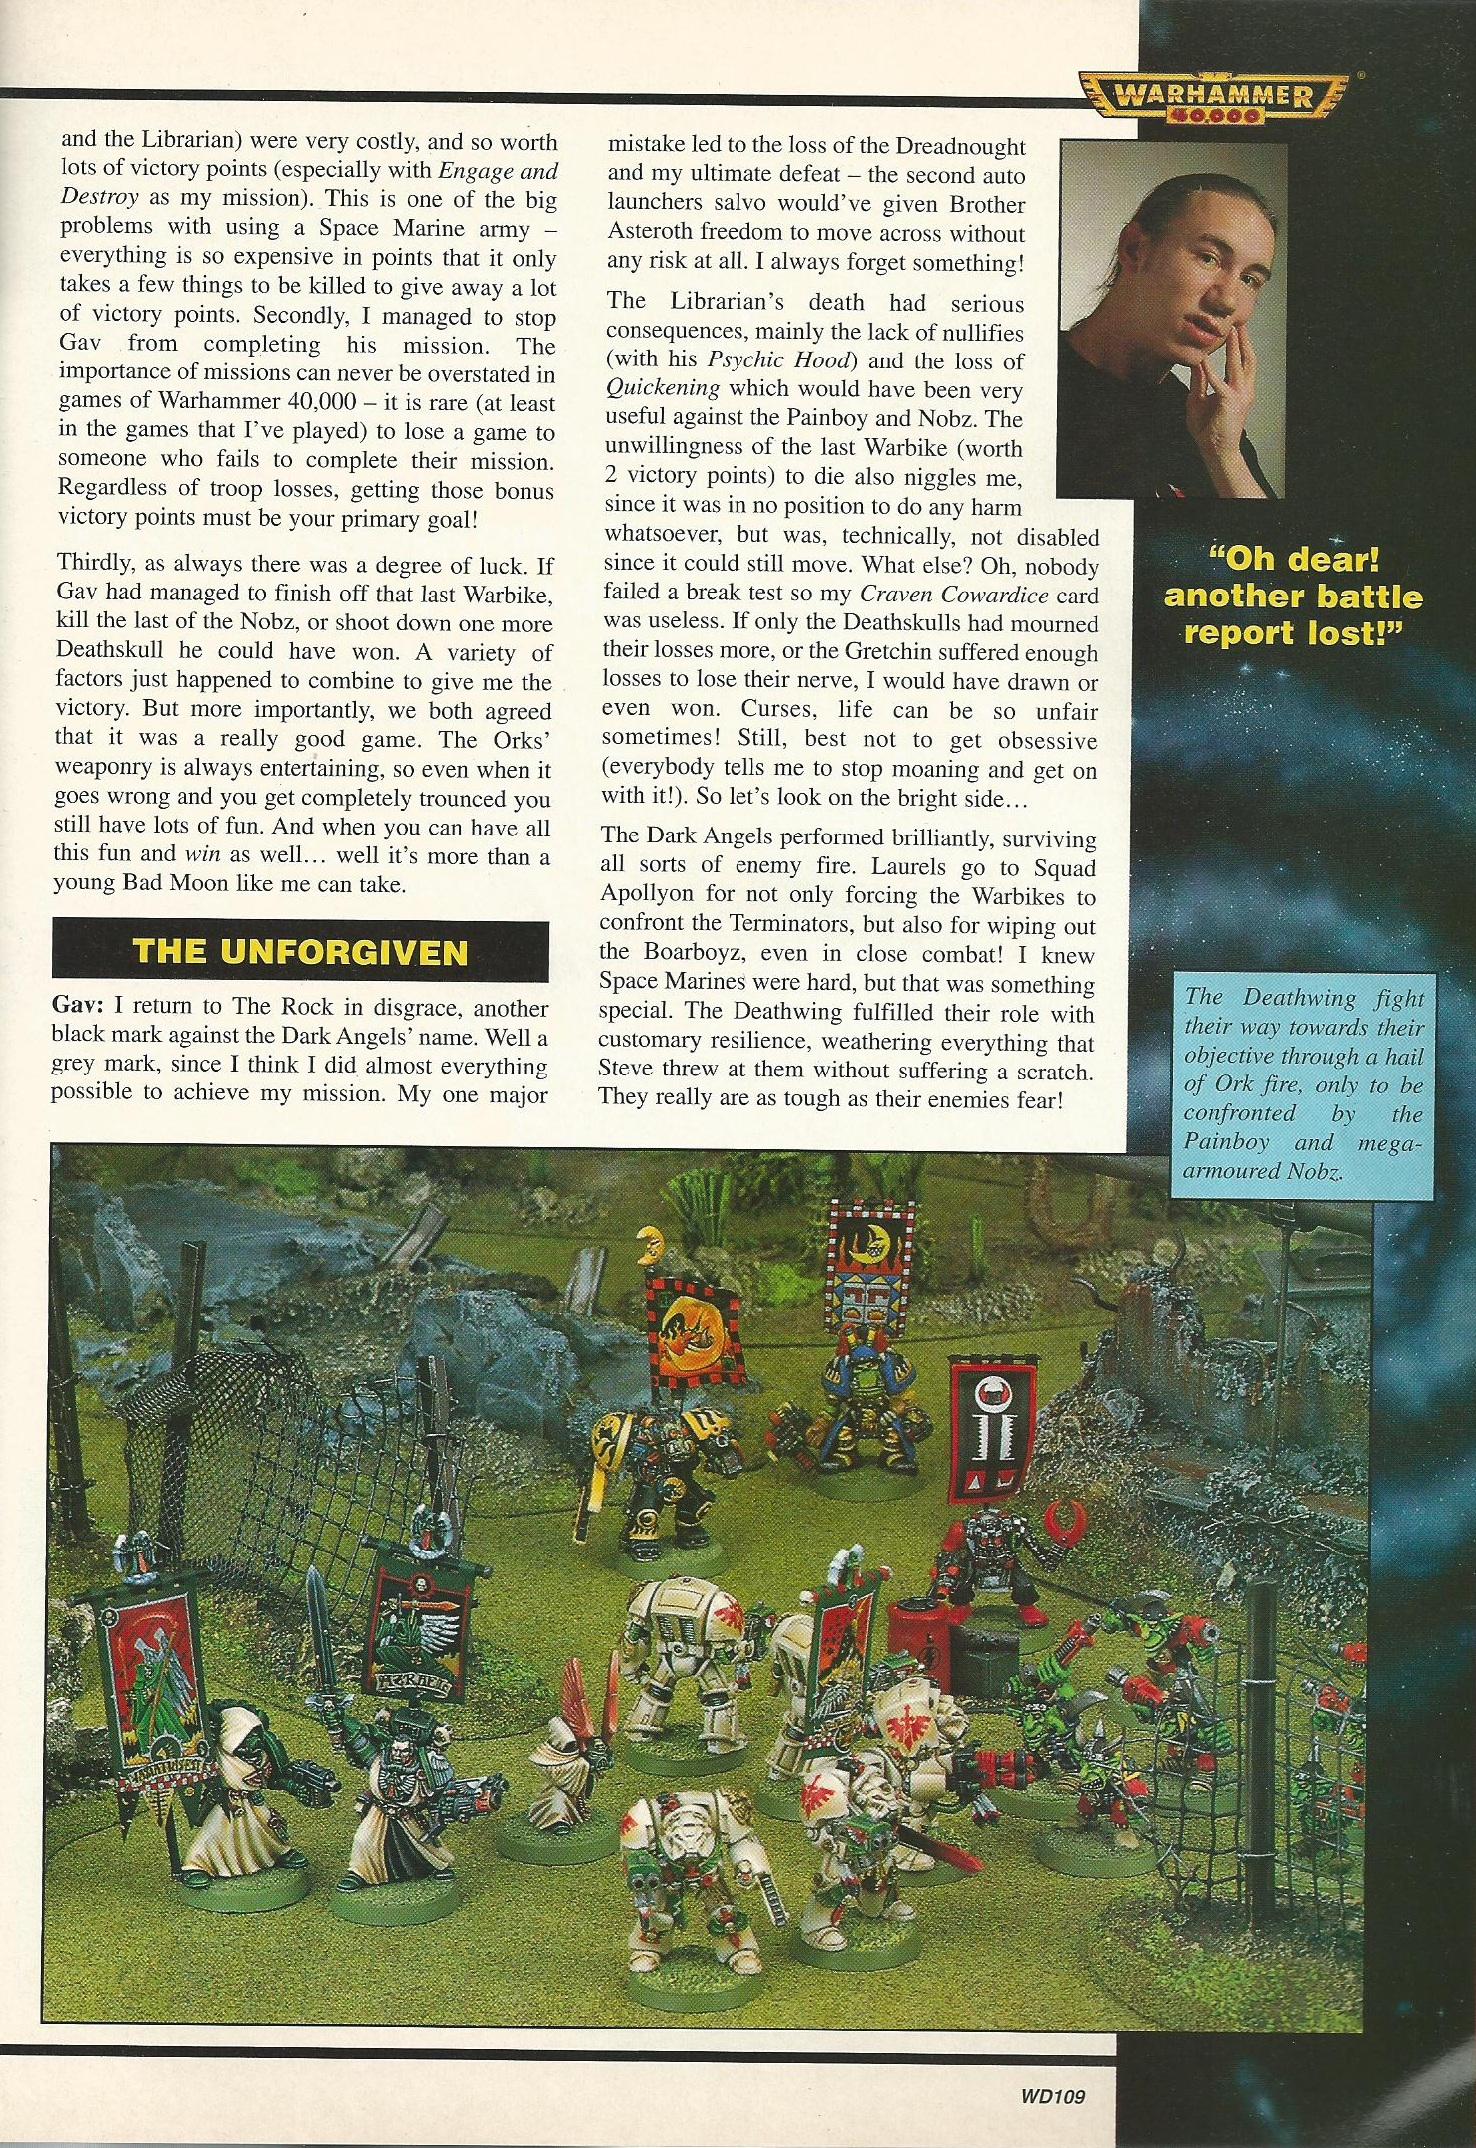 White Dwarf Battle Reports Online (page 4) - Pics about space